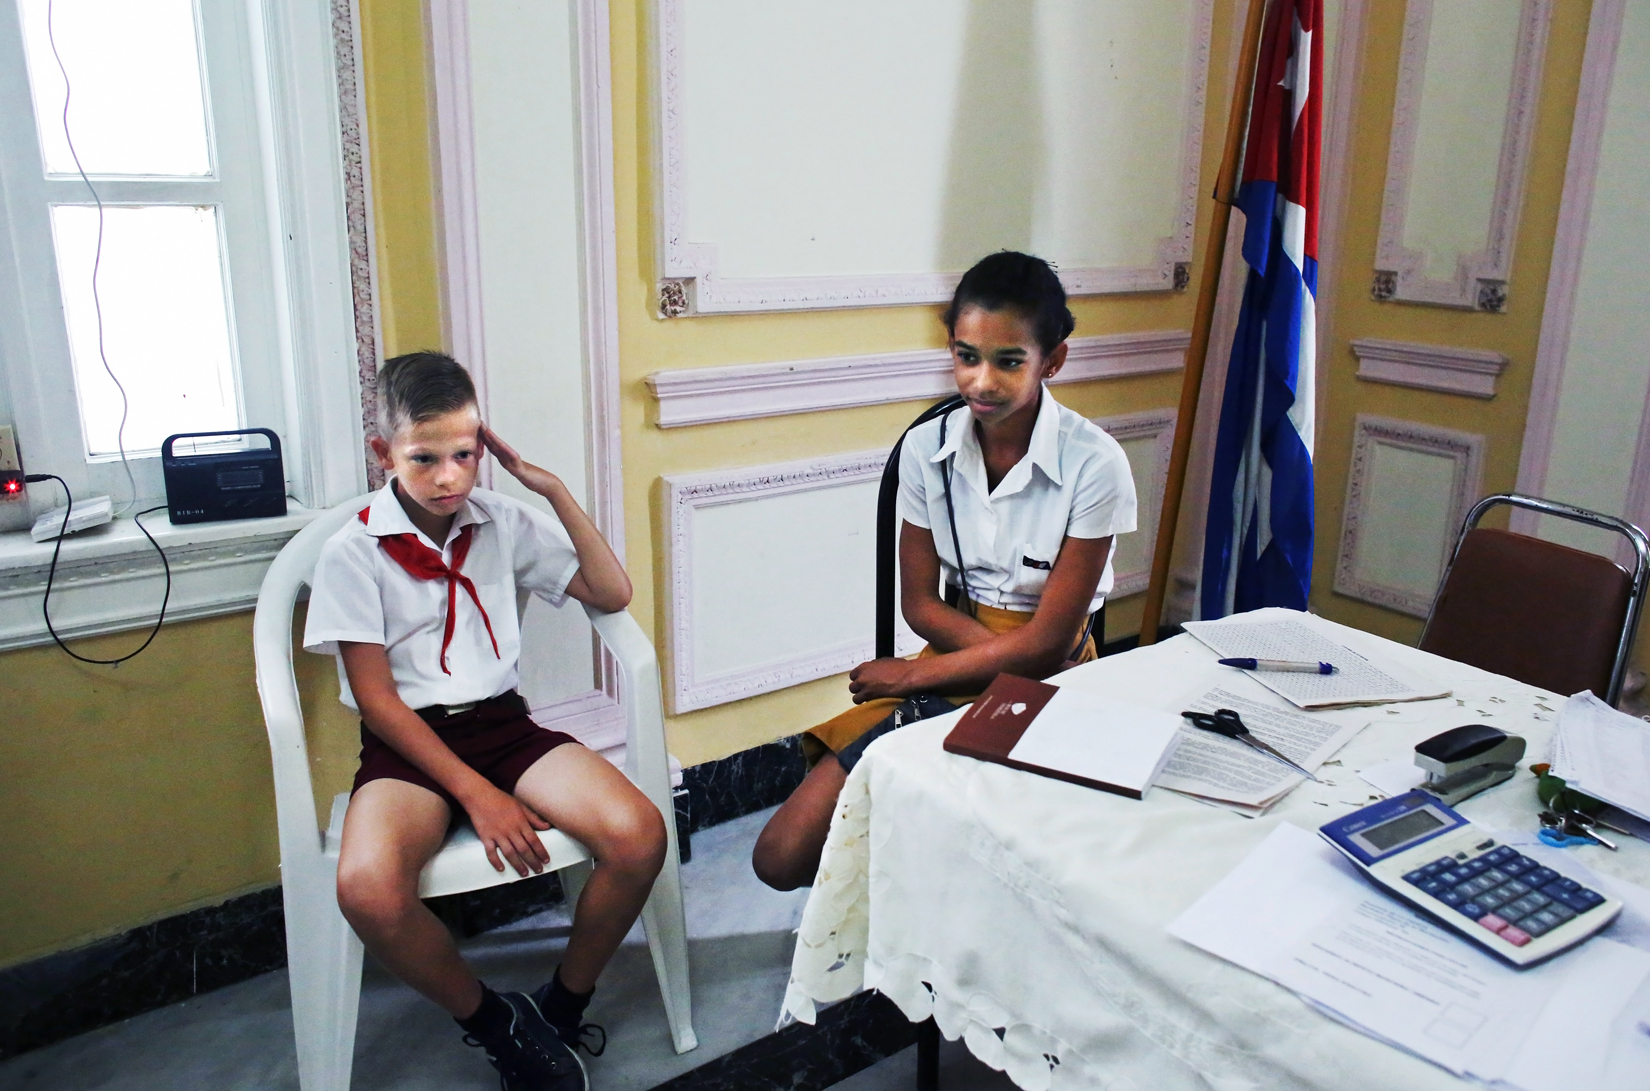 A student clad in the uniform of communist youth practices a salute given to voters as they place their ballots in Cuba's Elecciones Parciales (Partial Elections) to elect delegates from the country's single party to its unicameral parliament, this April in Havana, Cuba. Members of the José Martí Pioneer Organization for children operated by the communist party - that is quite similar to a communist youth organization in which I had to partake as a young Bulgarian student - are often sent to people's homes as a means to motivate citizens to vote. Voting is not mandatory, but heavily frowned upon if not exercised.Elementary schoolchildren wear pañoletas, or scarves as part of the organization's uniform - blue or red in color depending on their age, and switch to yellow and white uniforms in adolescence.